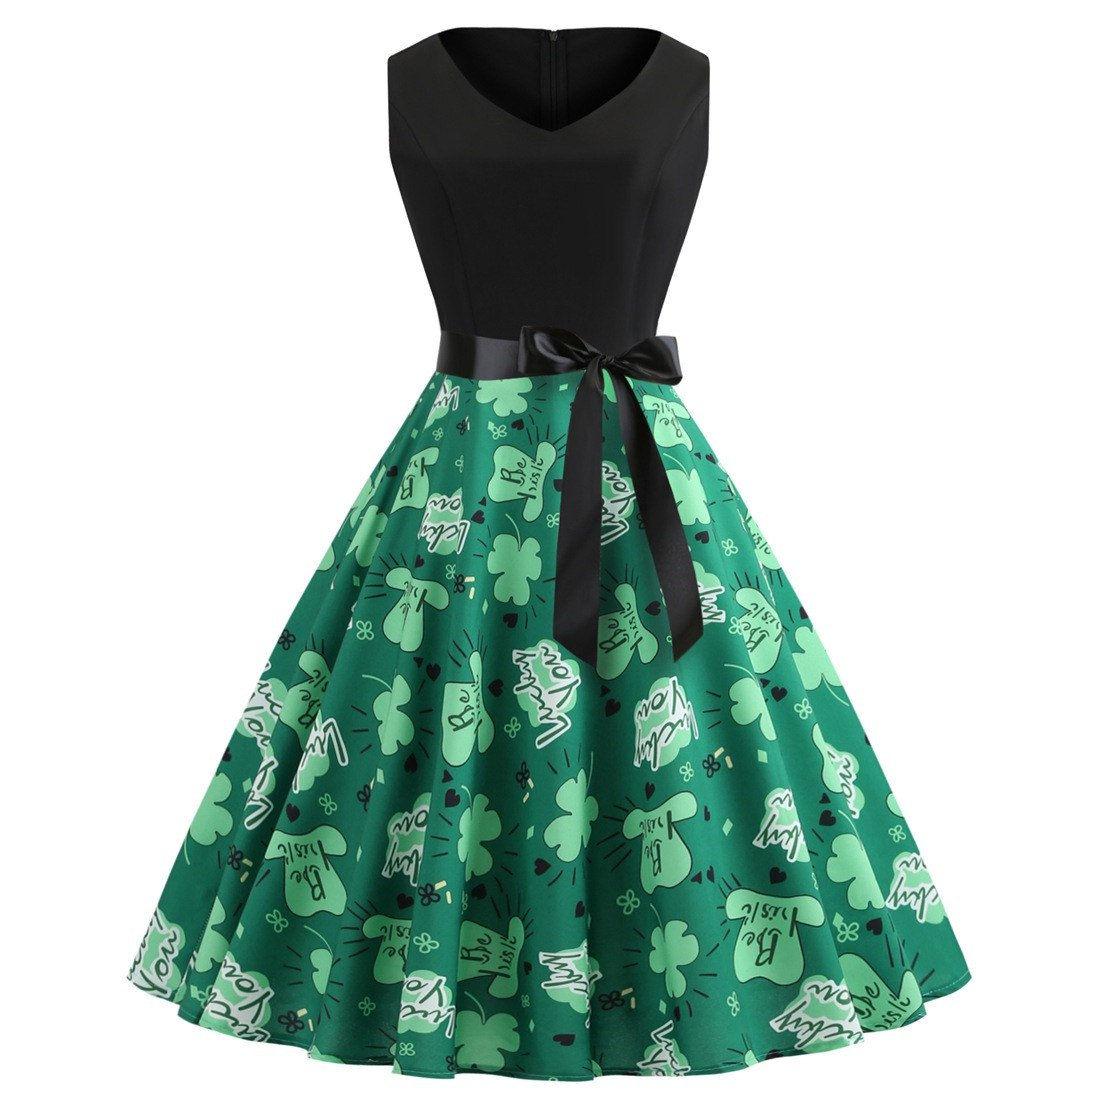 St. Patrick Casual Dresses Vintage Party  Dress Fashion Ireland Plus Size Shamrocks Printed Clothing